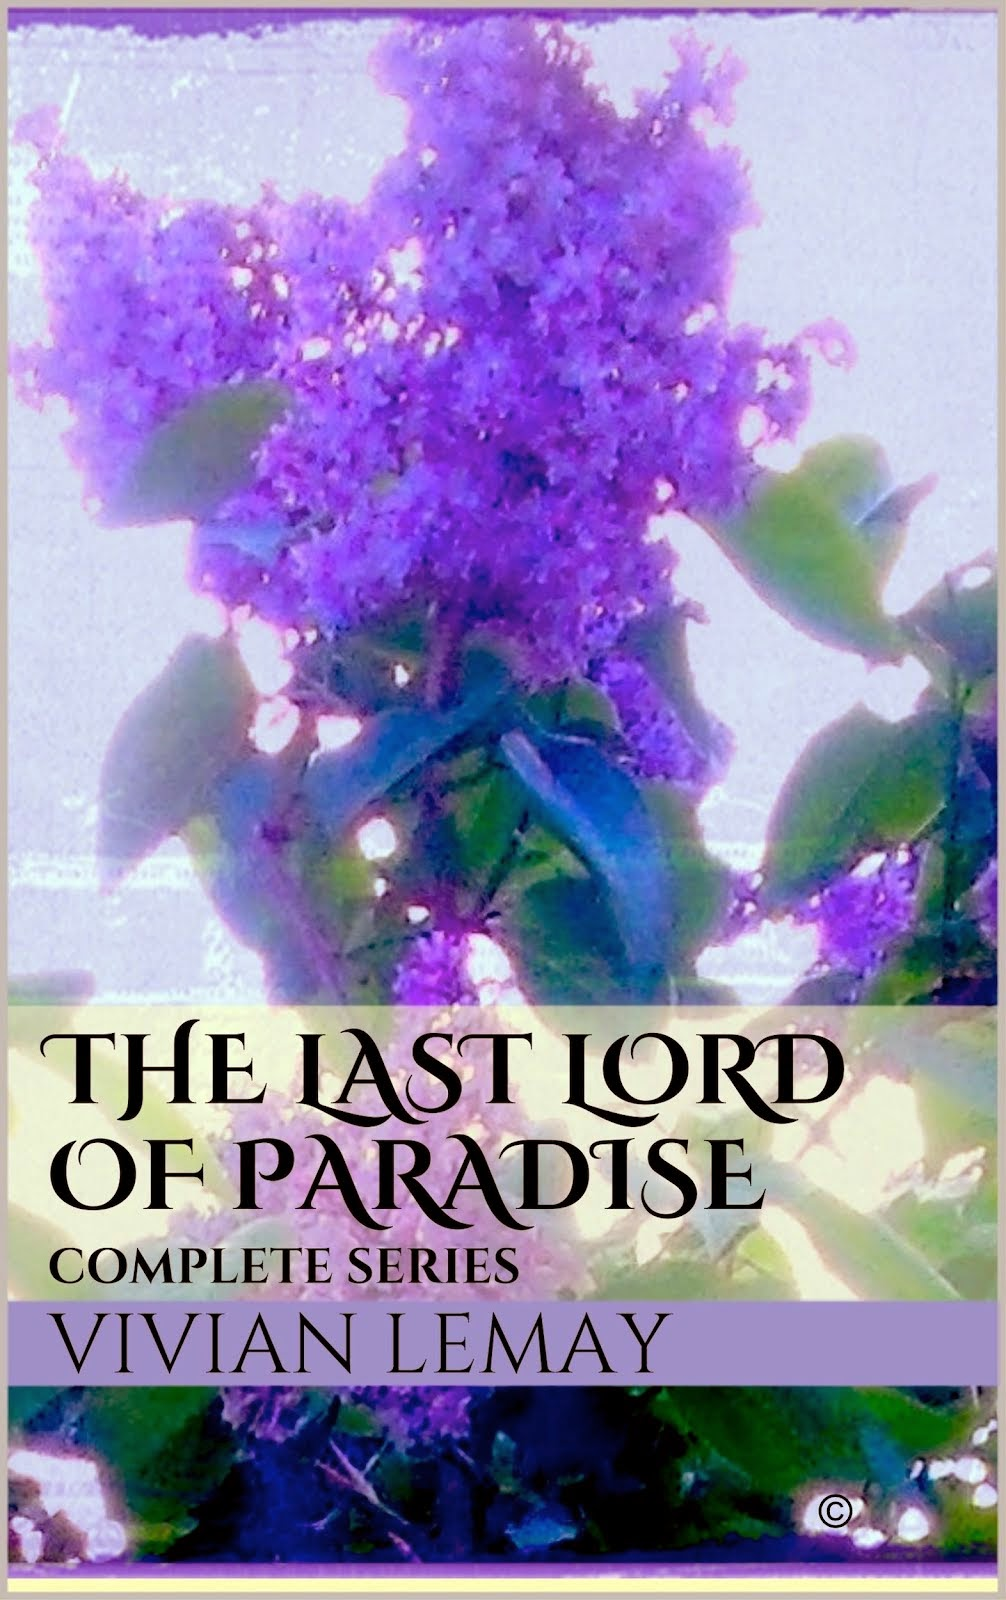 THE LAST LORD OF PARADISE, Complete Series